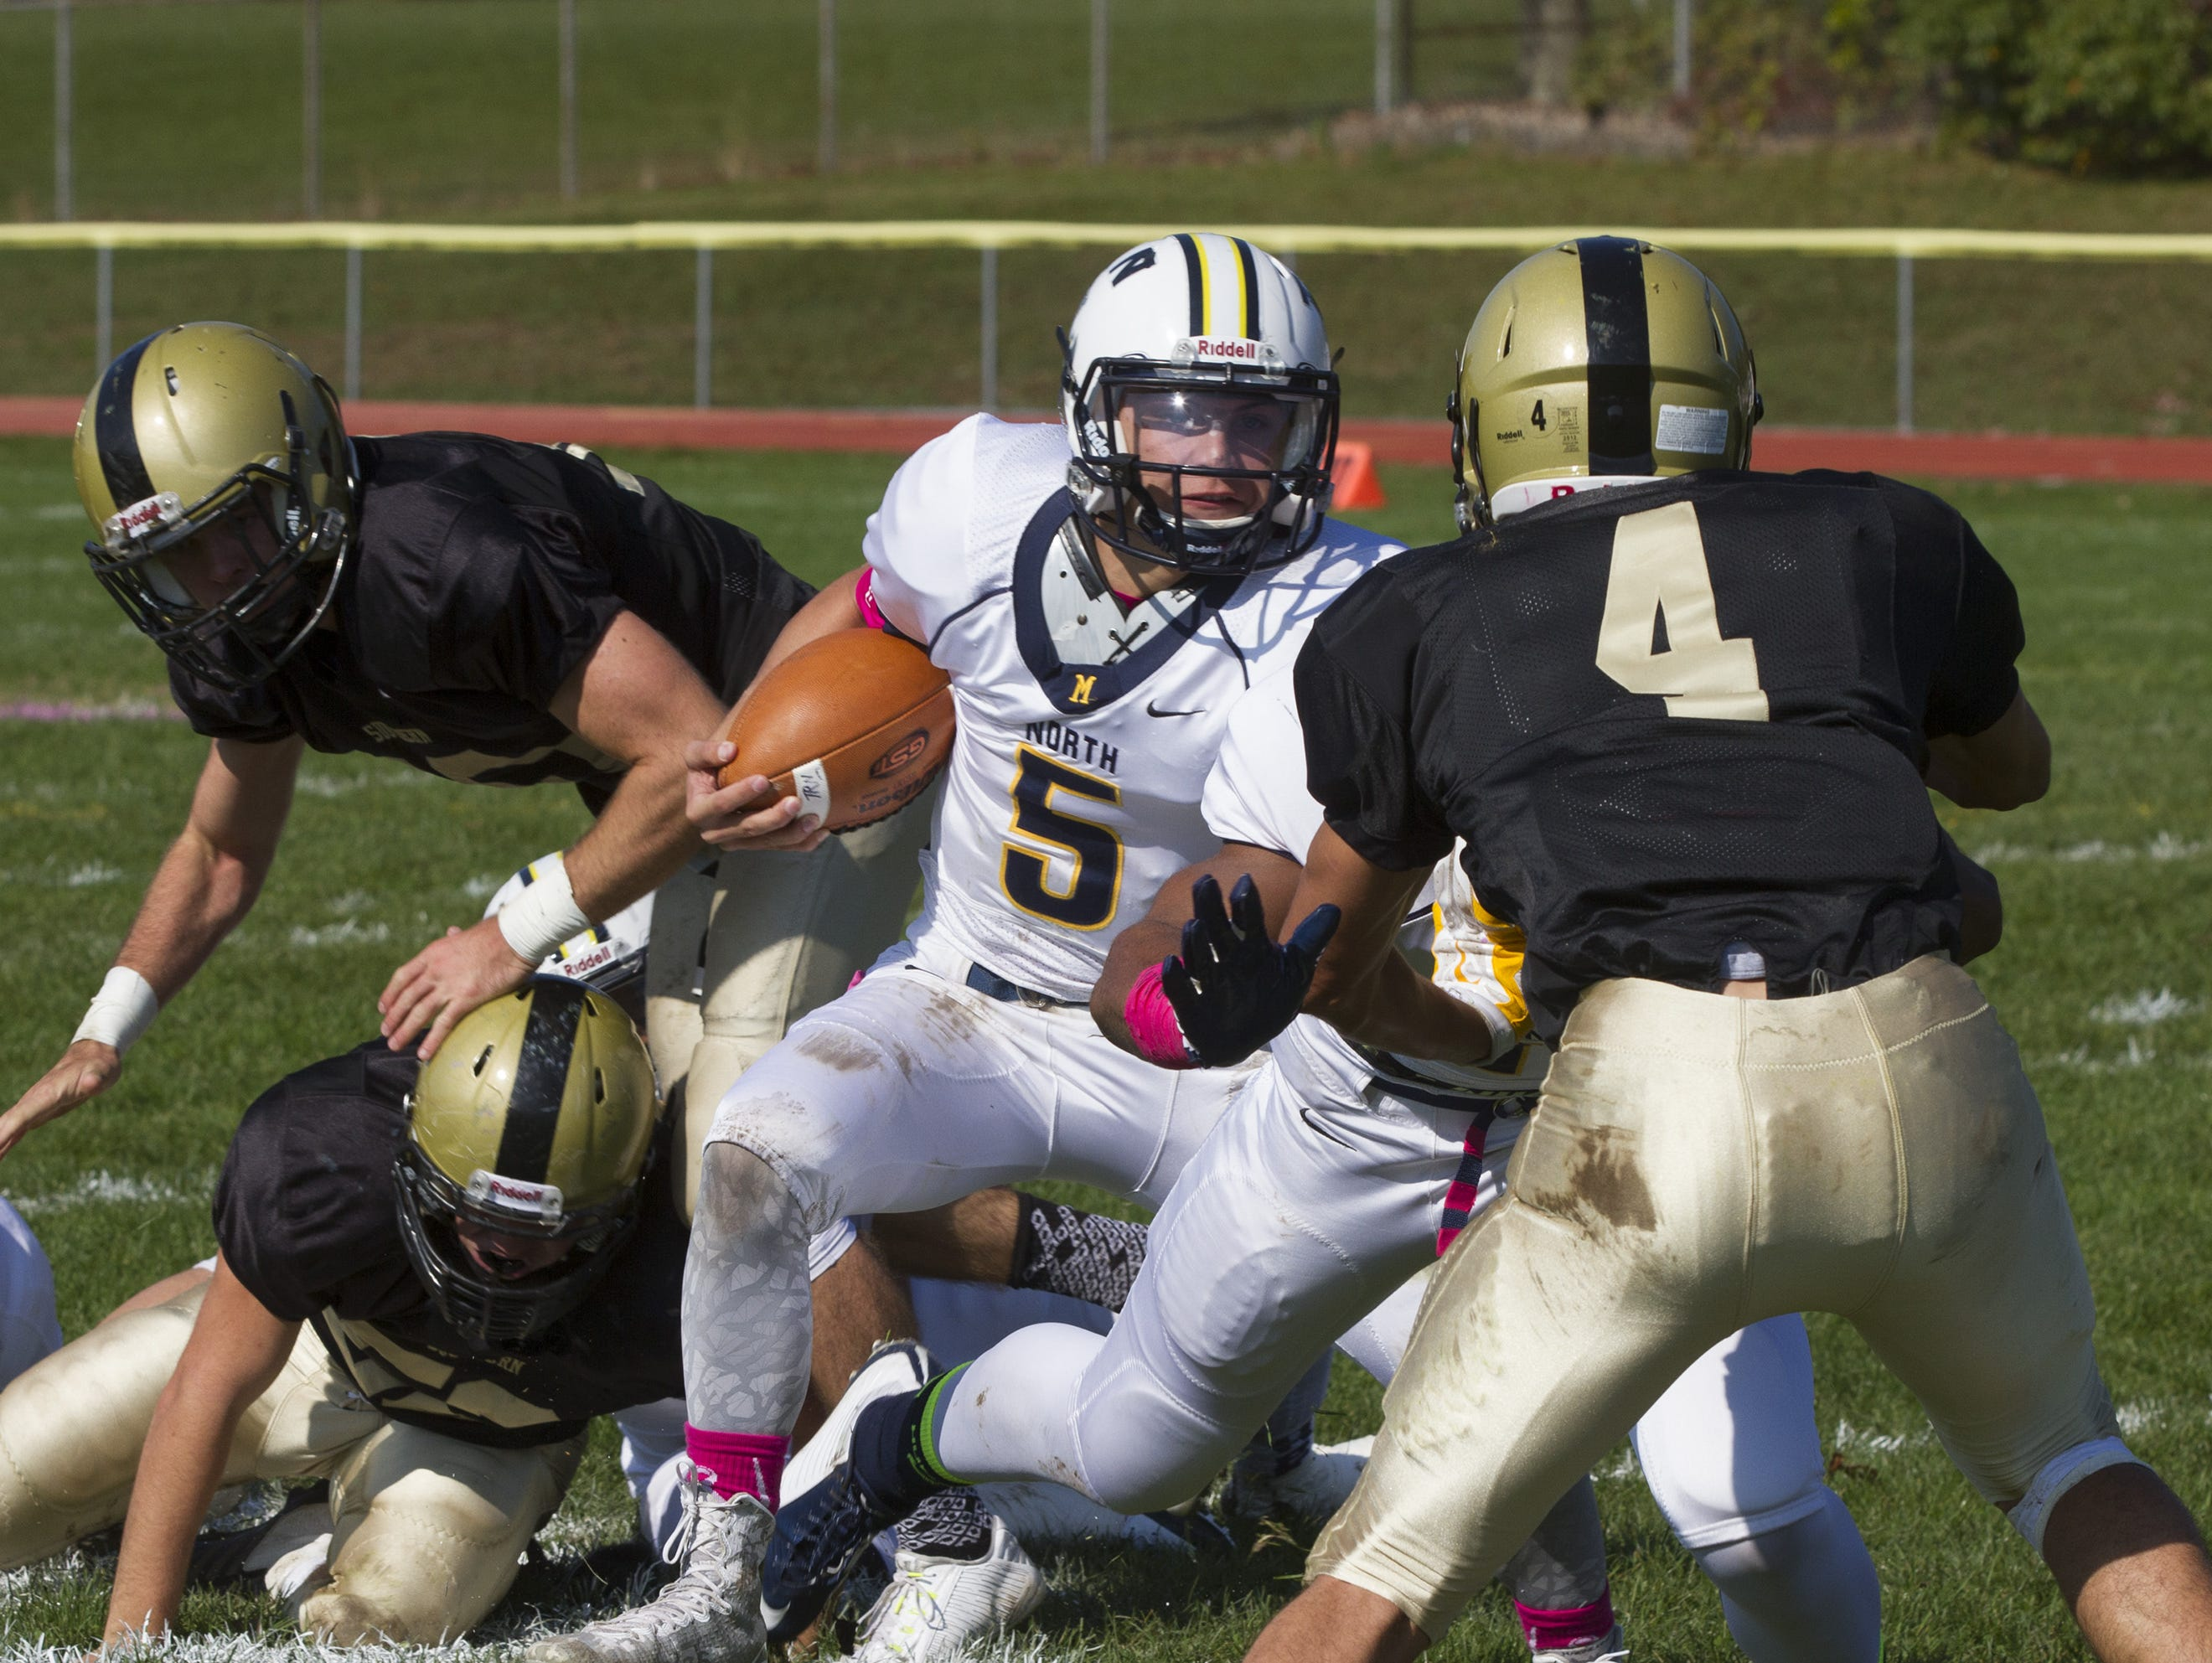 Toms River North quarterback Mike Husni shown running with the ball in 2014 against Southern, will be a key player for the Mariners in the NJSIAA South Group V championship game.